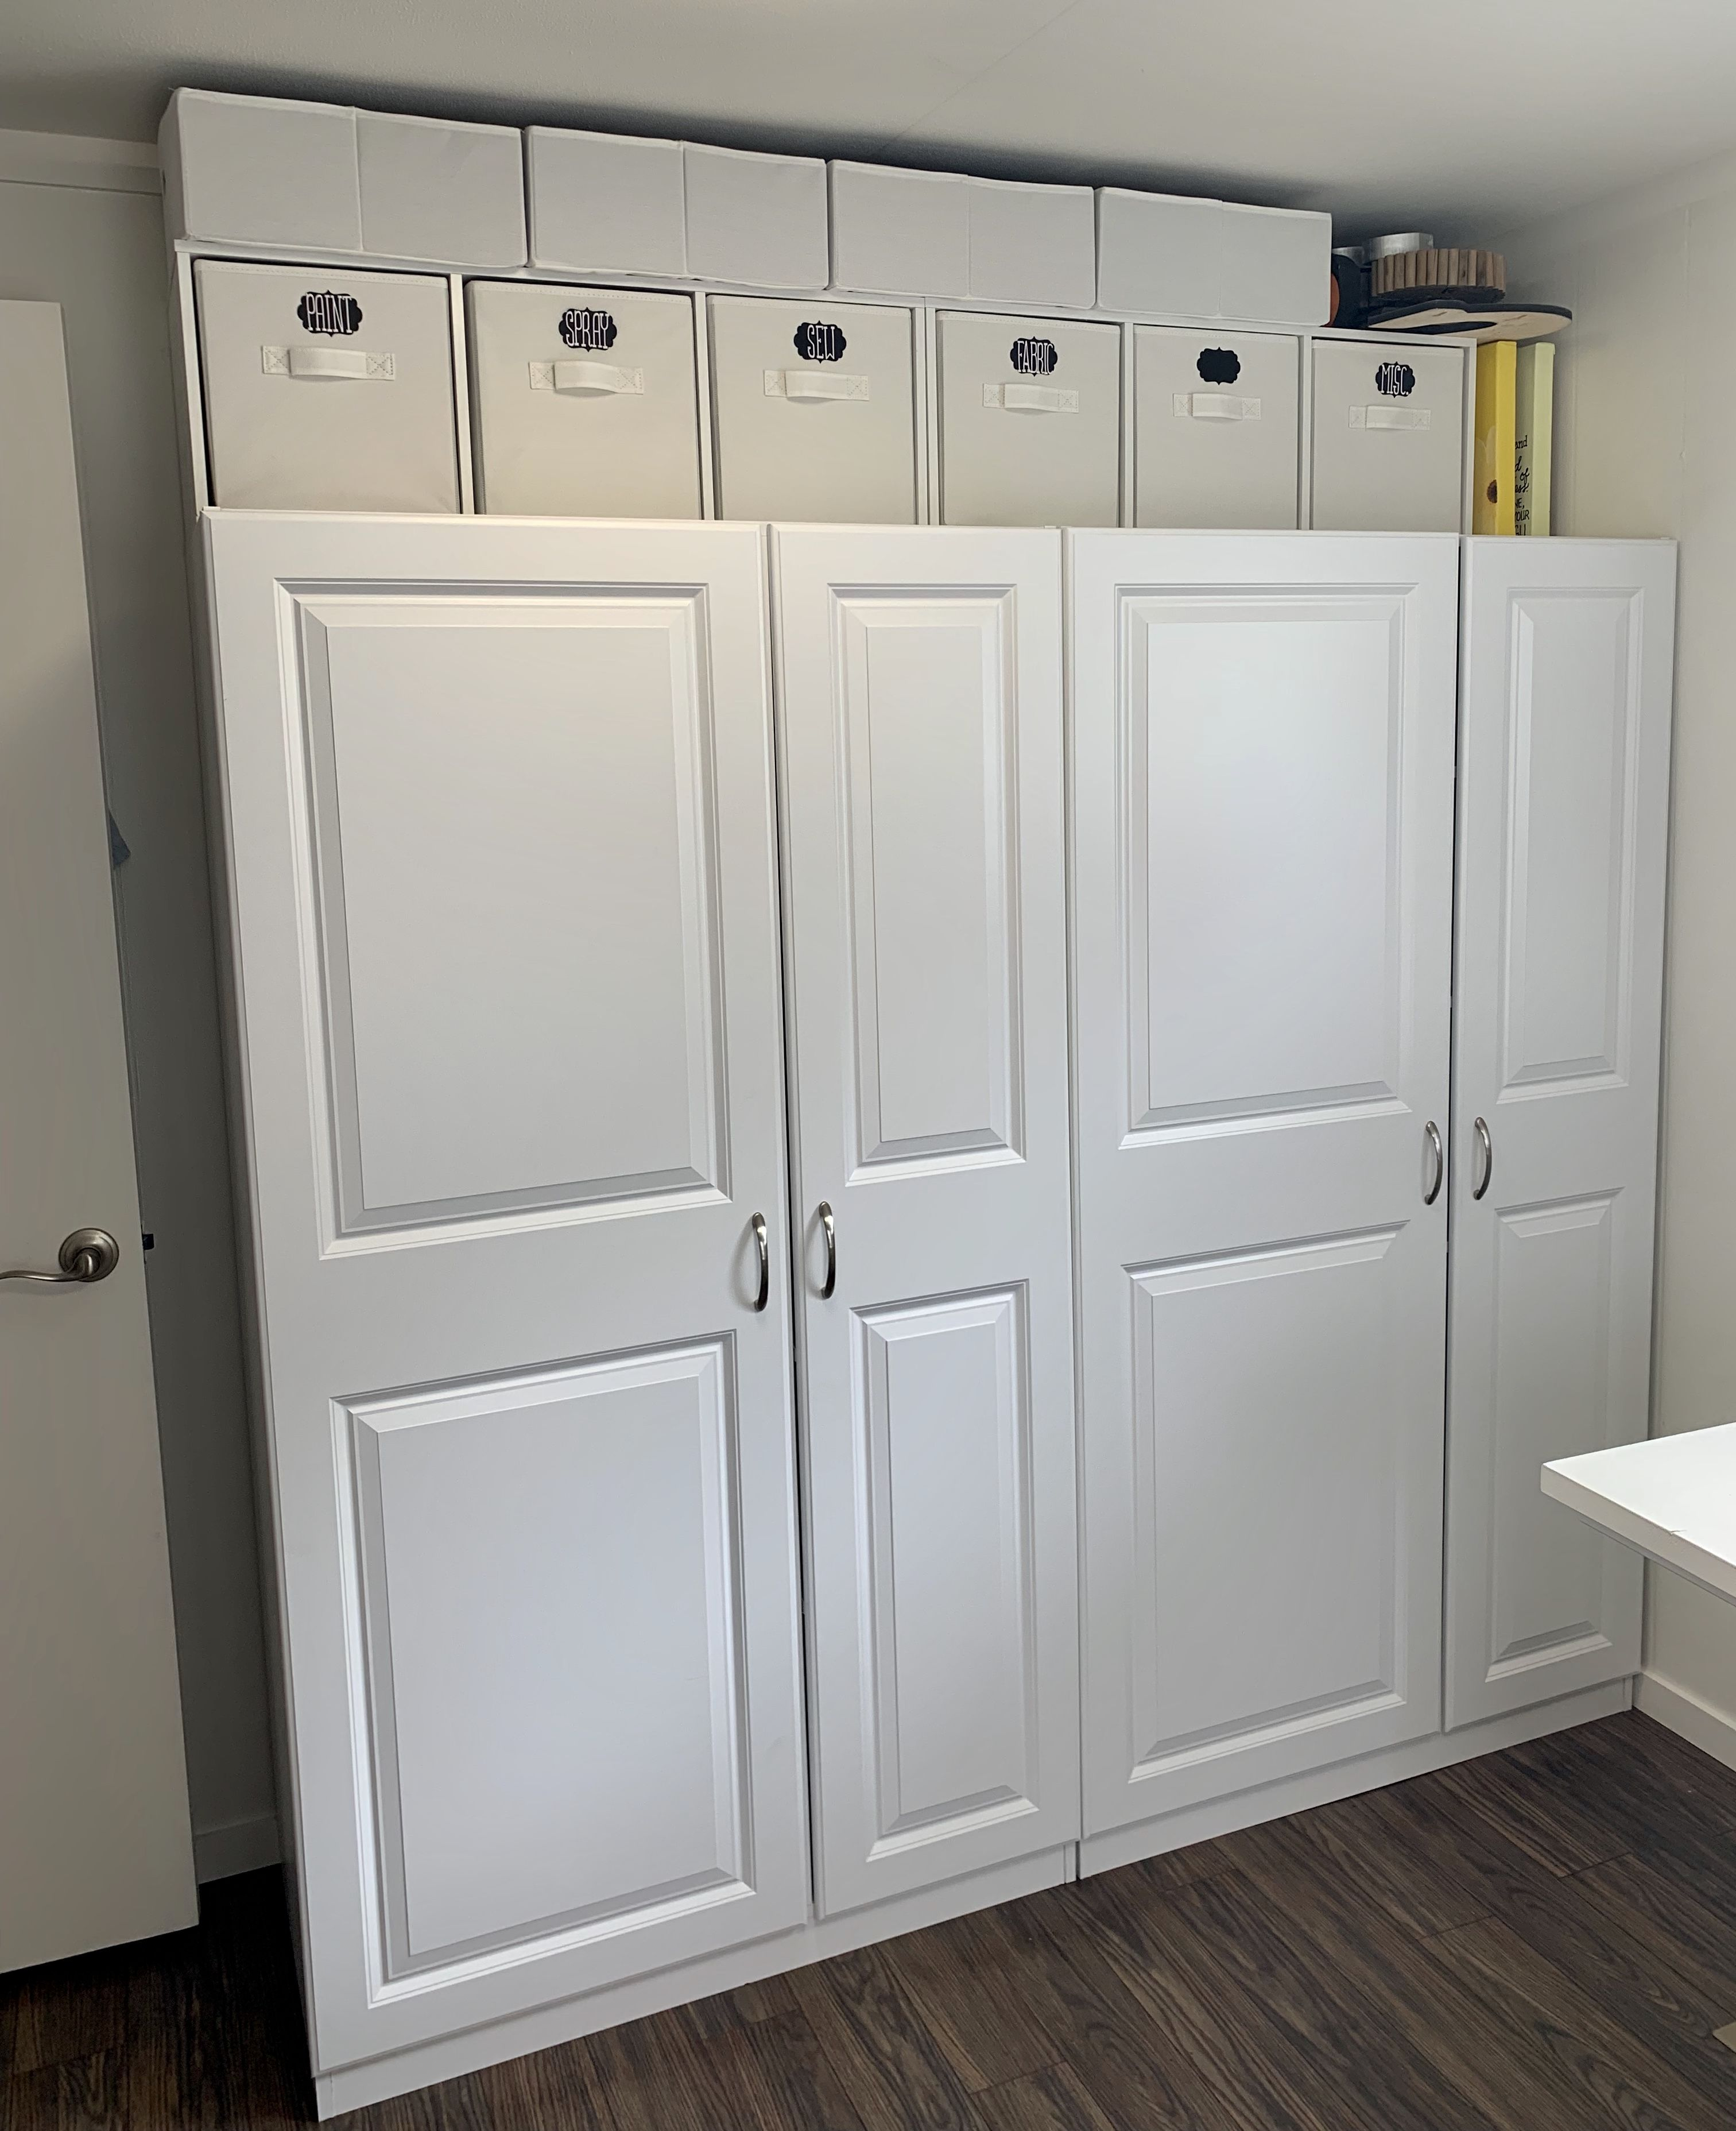 constructed 2 lowe s cabinets side by side added 2 on lowe s laundry room storage cabinets id=15723